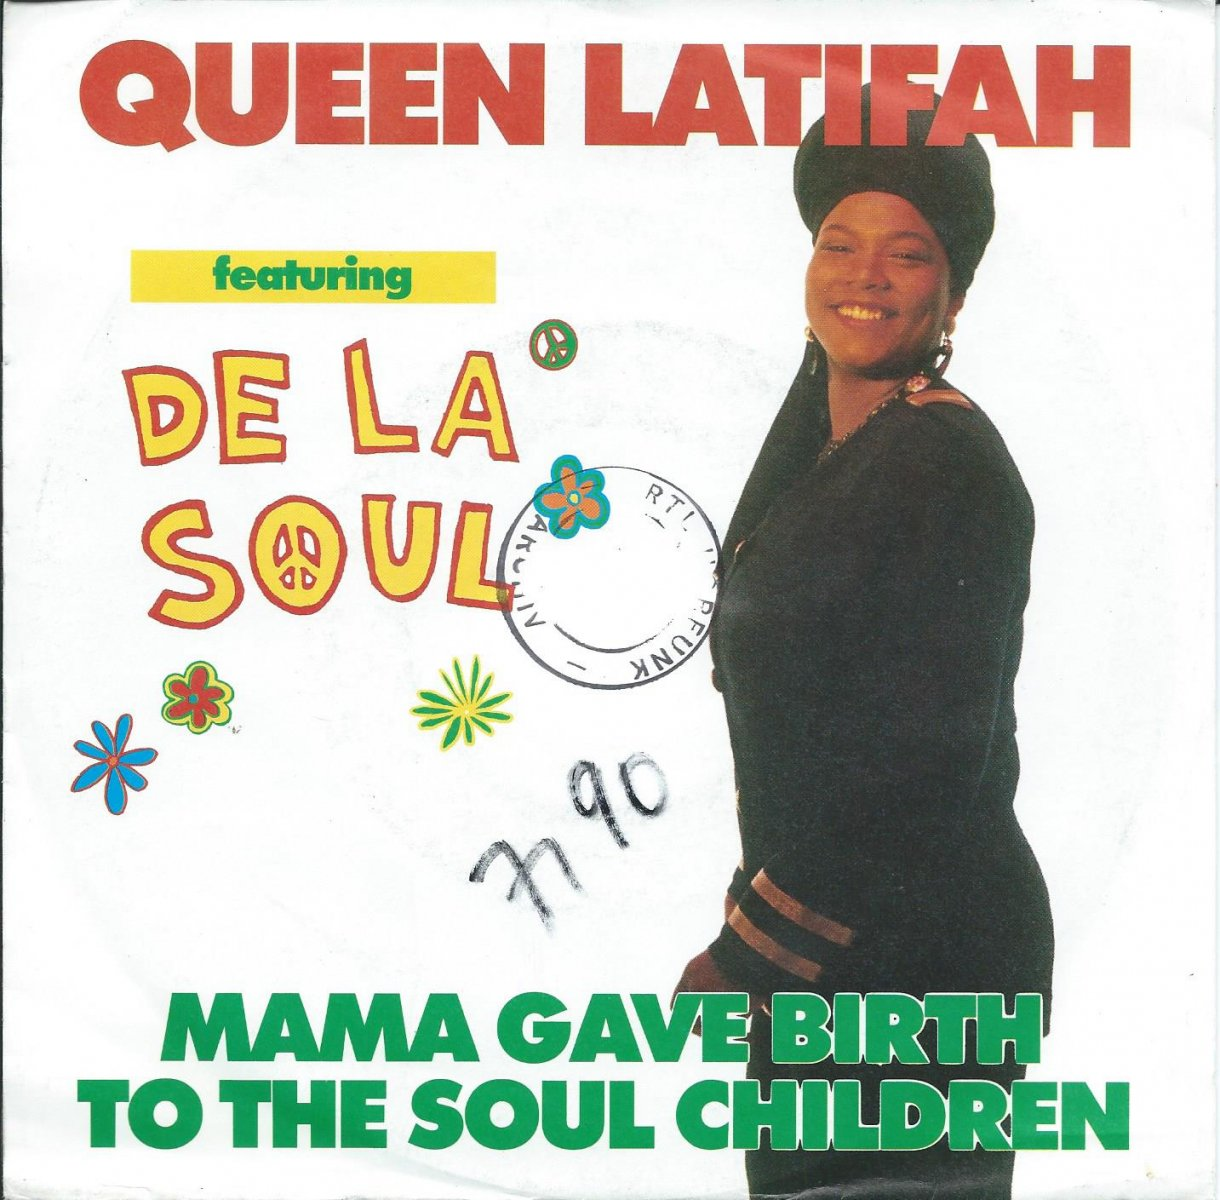 QUEEN LATIFAH FEATURING DE LA SOUL / MAMA GAVE BIRTH TO THE SOUL CHILDREN (7